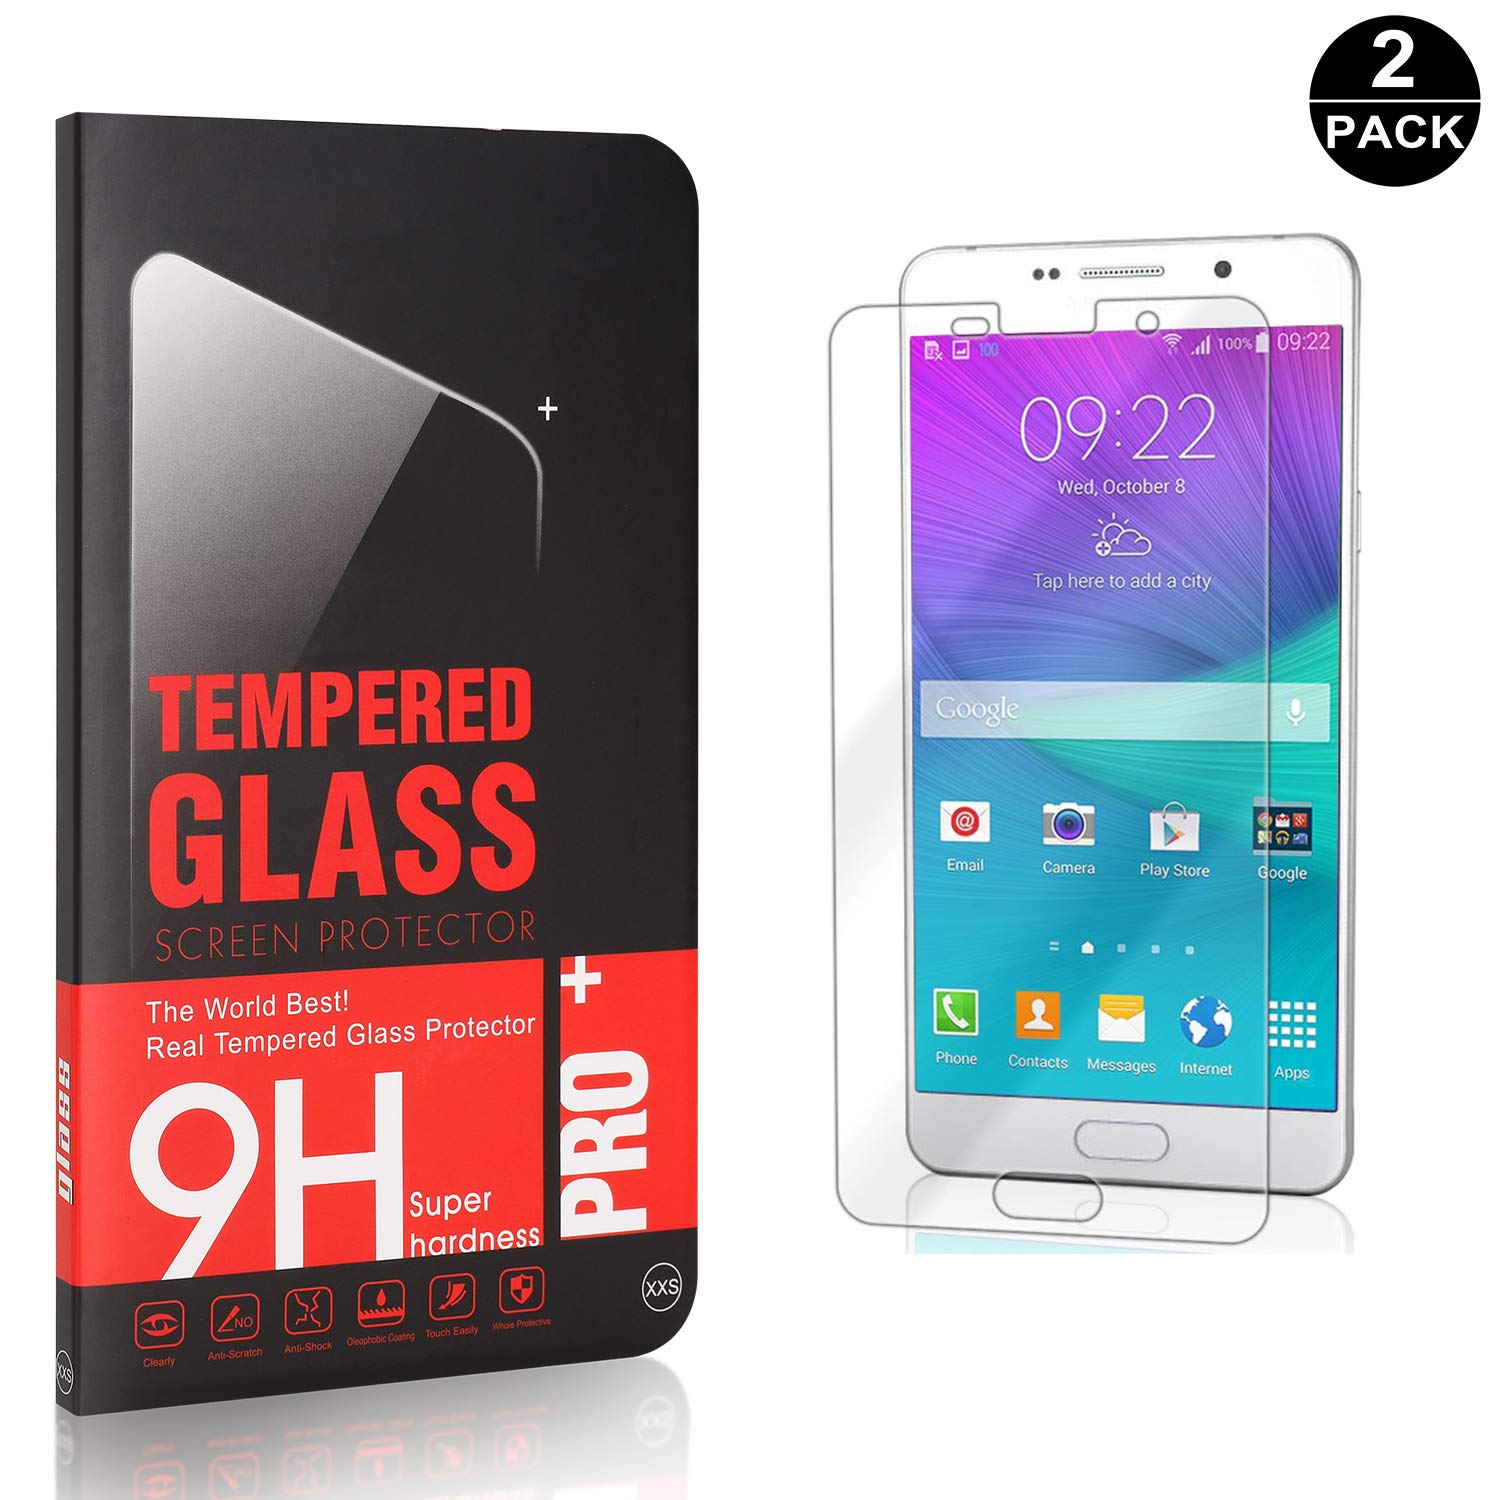 Screen Protector Compatible with Galaxy A6S 4 Pack UNEXTATI Premium HD Anti Scratch Tempered Glass Screen Protector Film for Samsung Galaxy A6S